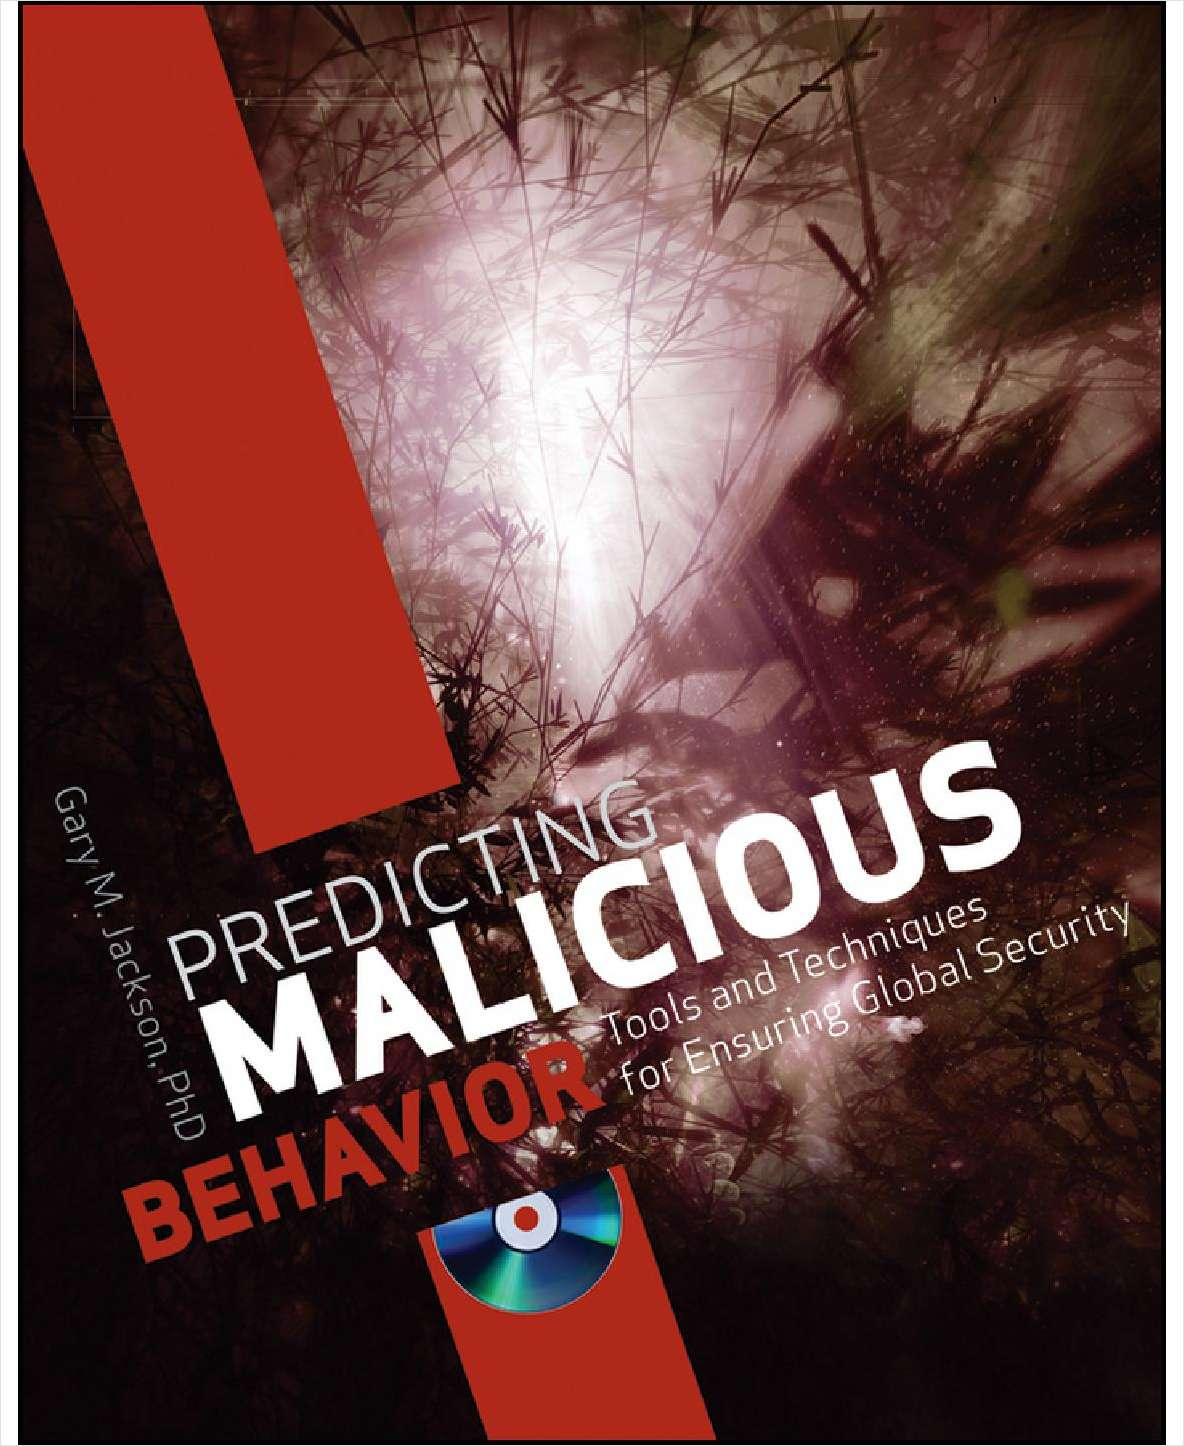 Predicting Malicious Behavior: Tools and Techniques for Ensuring Global Security--Free Sample Chapter